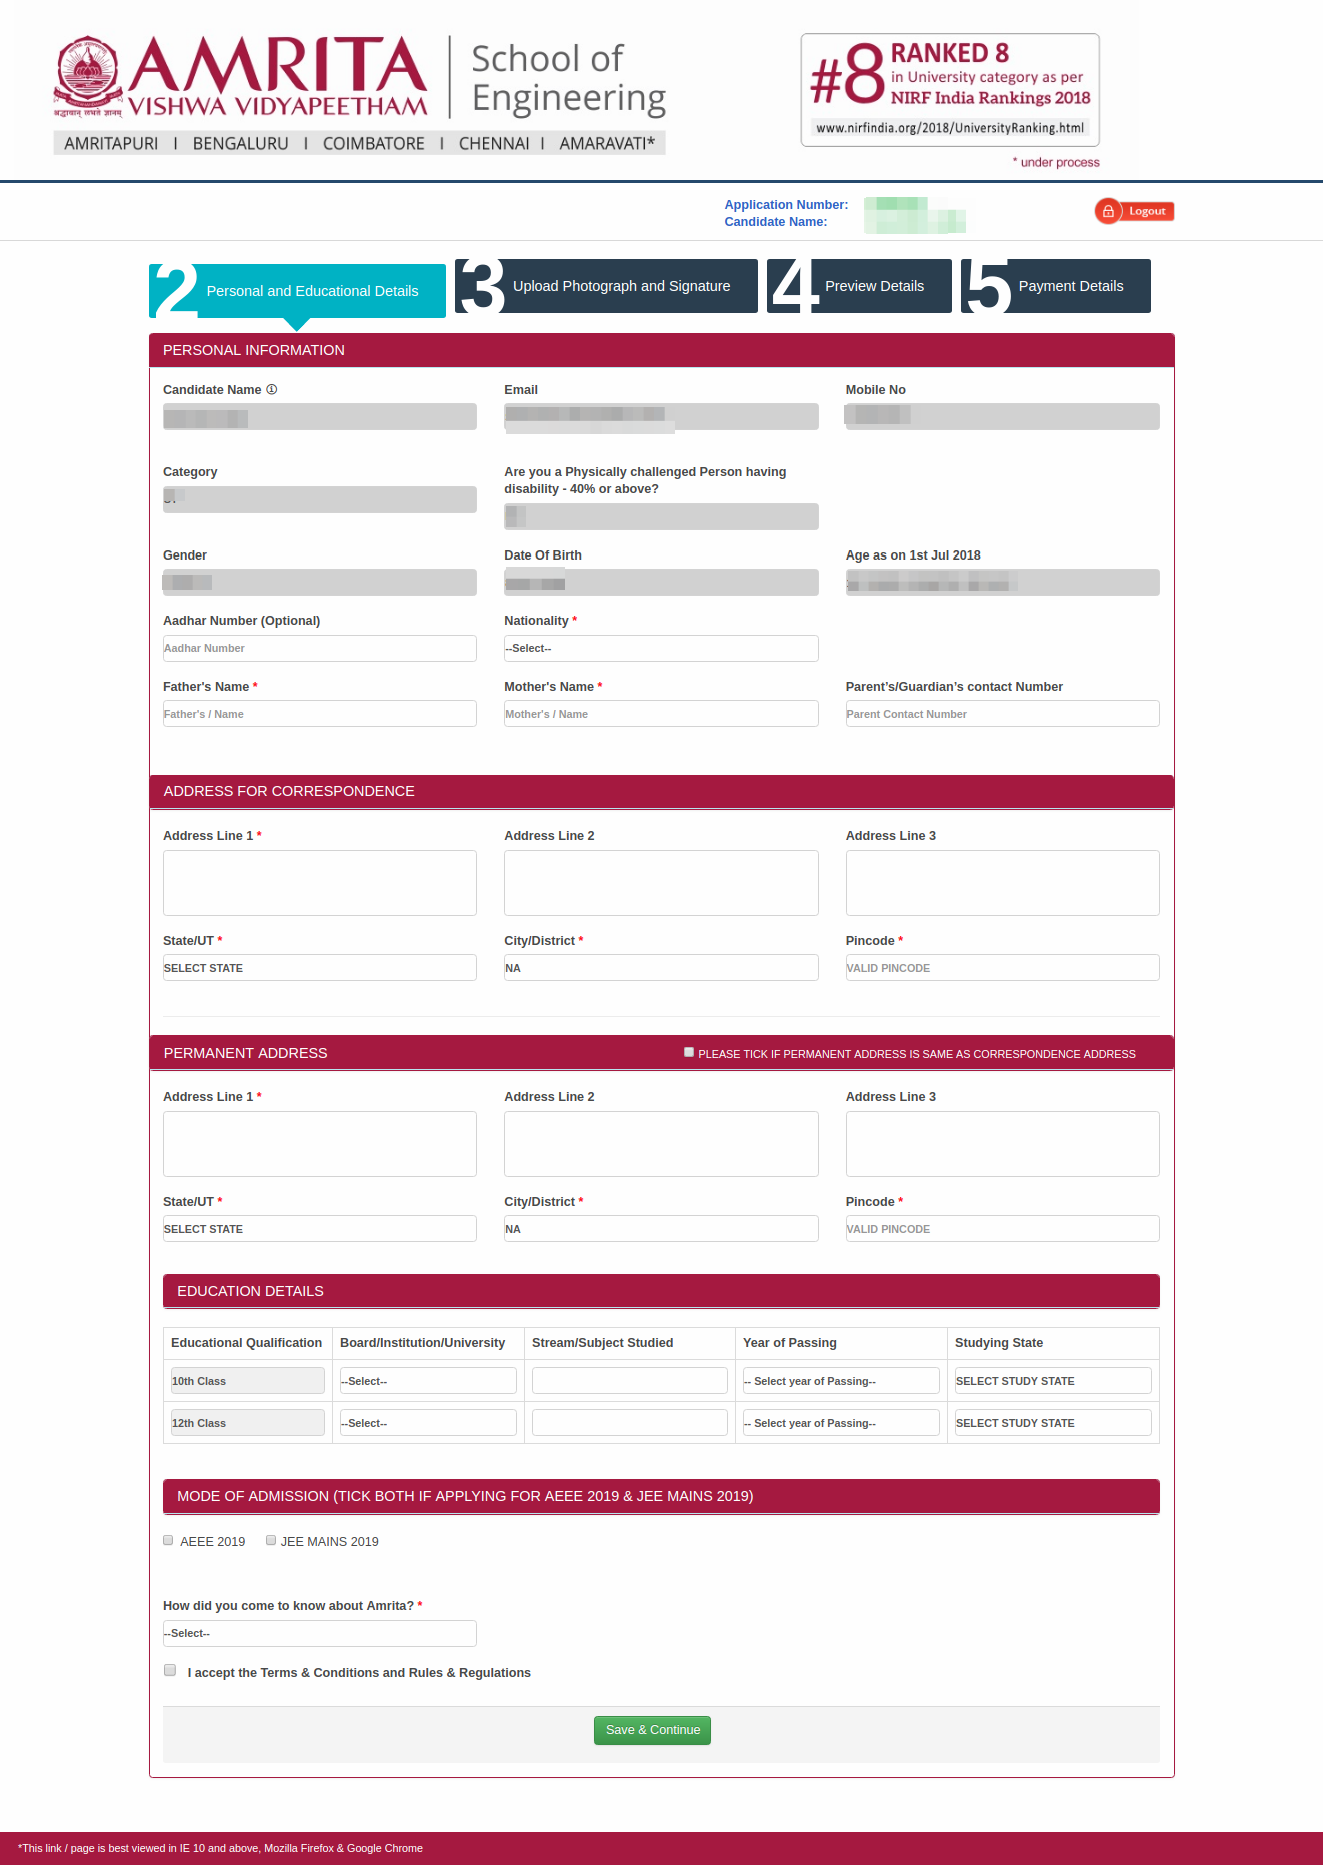 AEEE Application Form 2019 (Released), Registration – Apply online